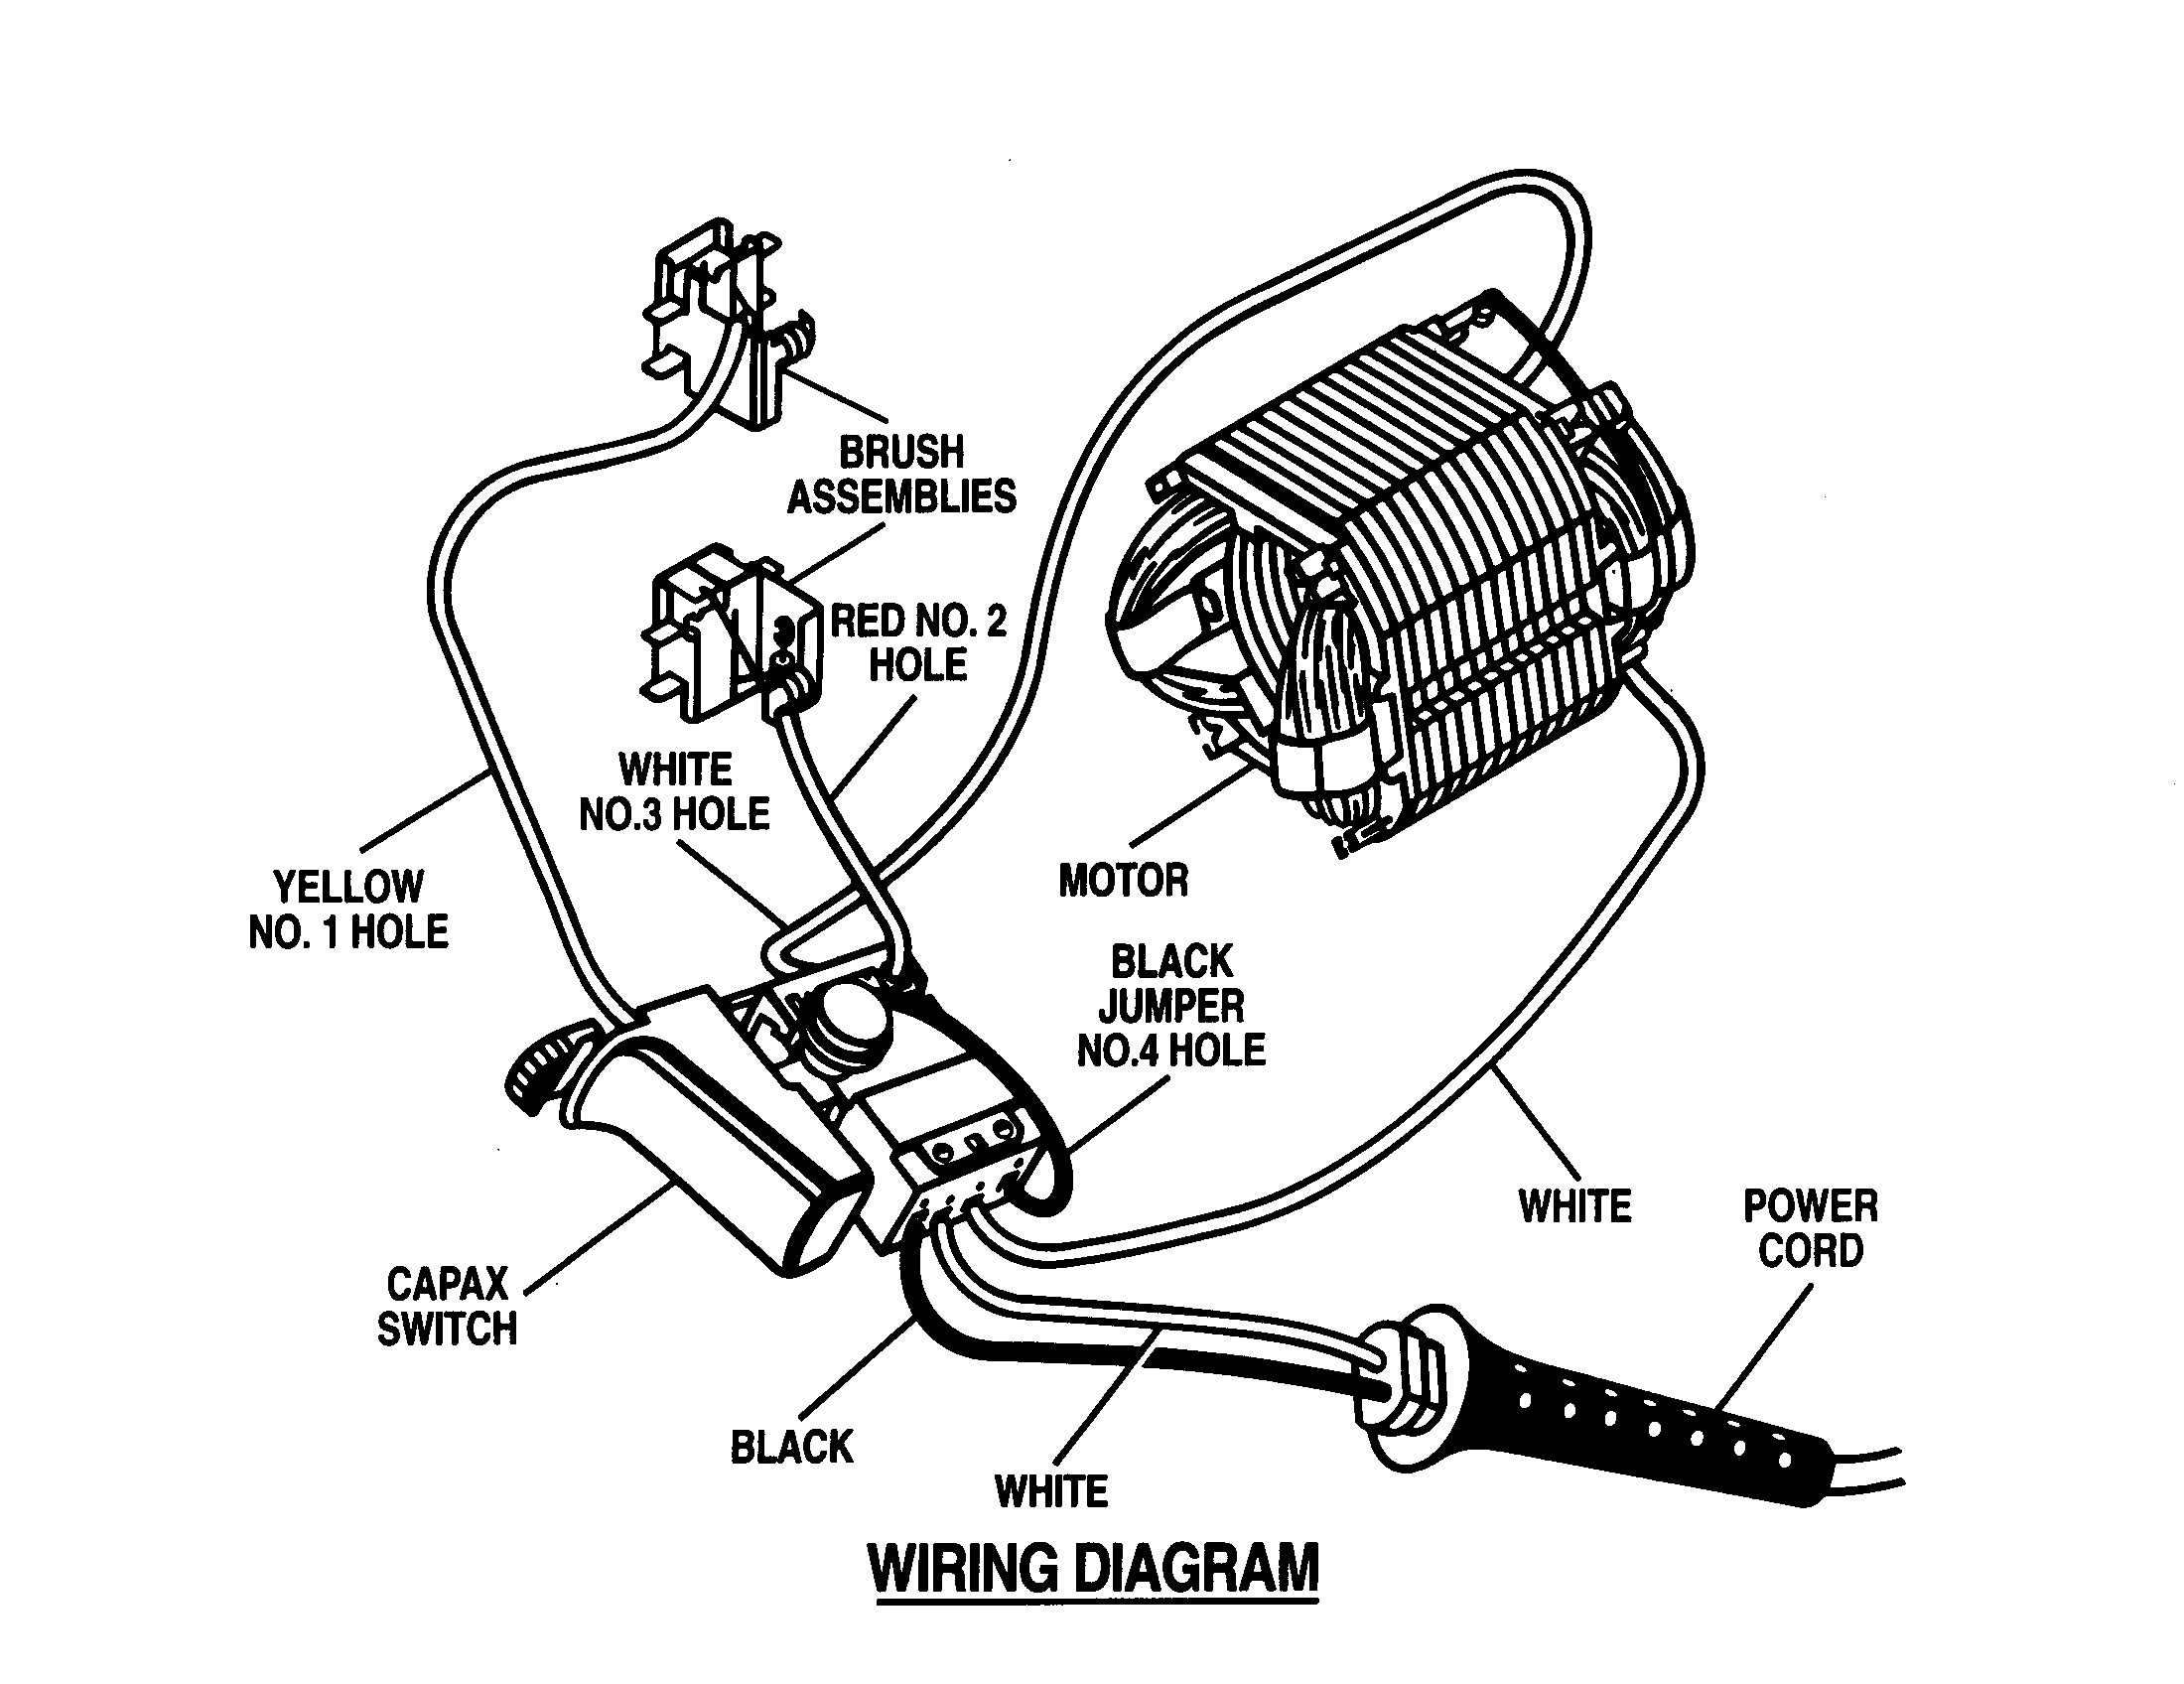 Wiring Diagram For Power Tool